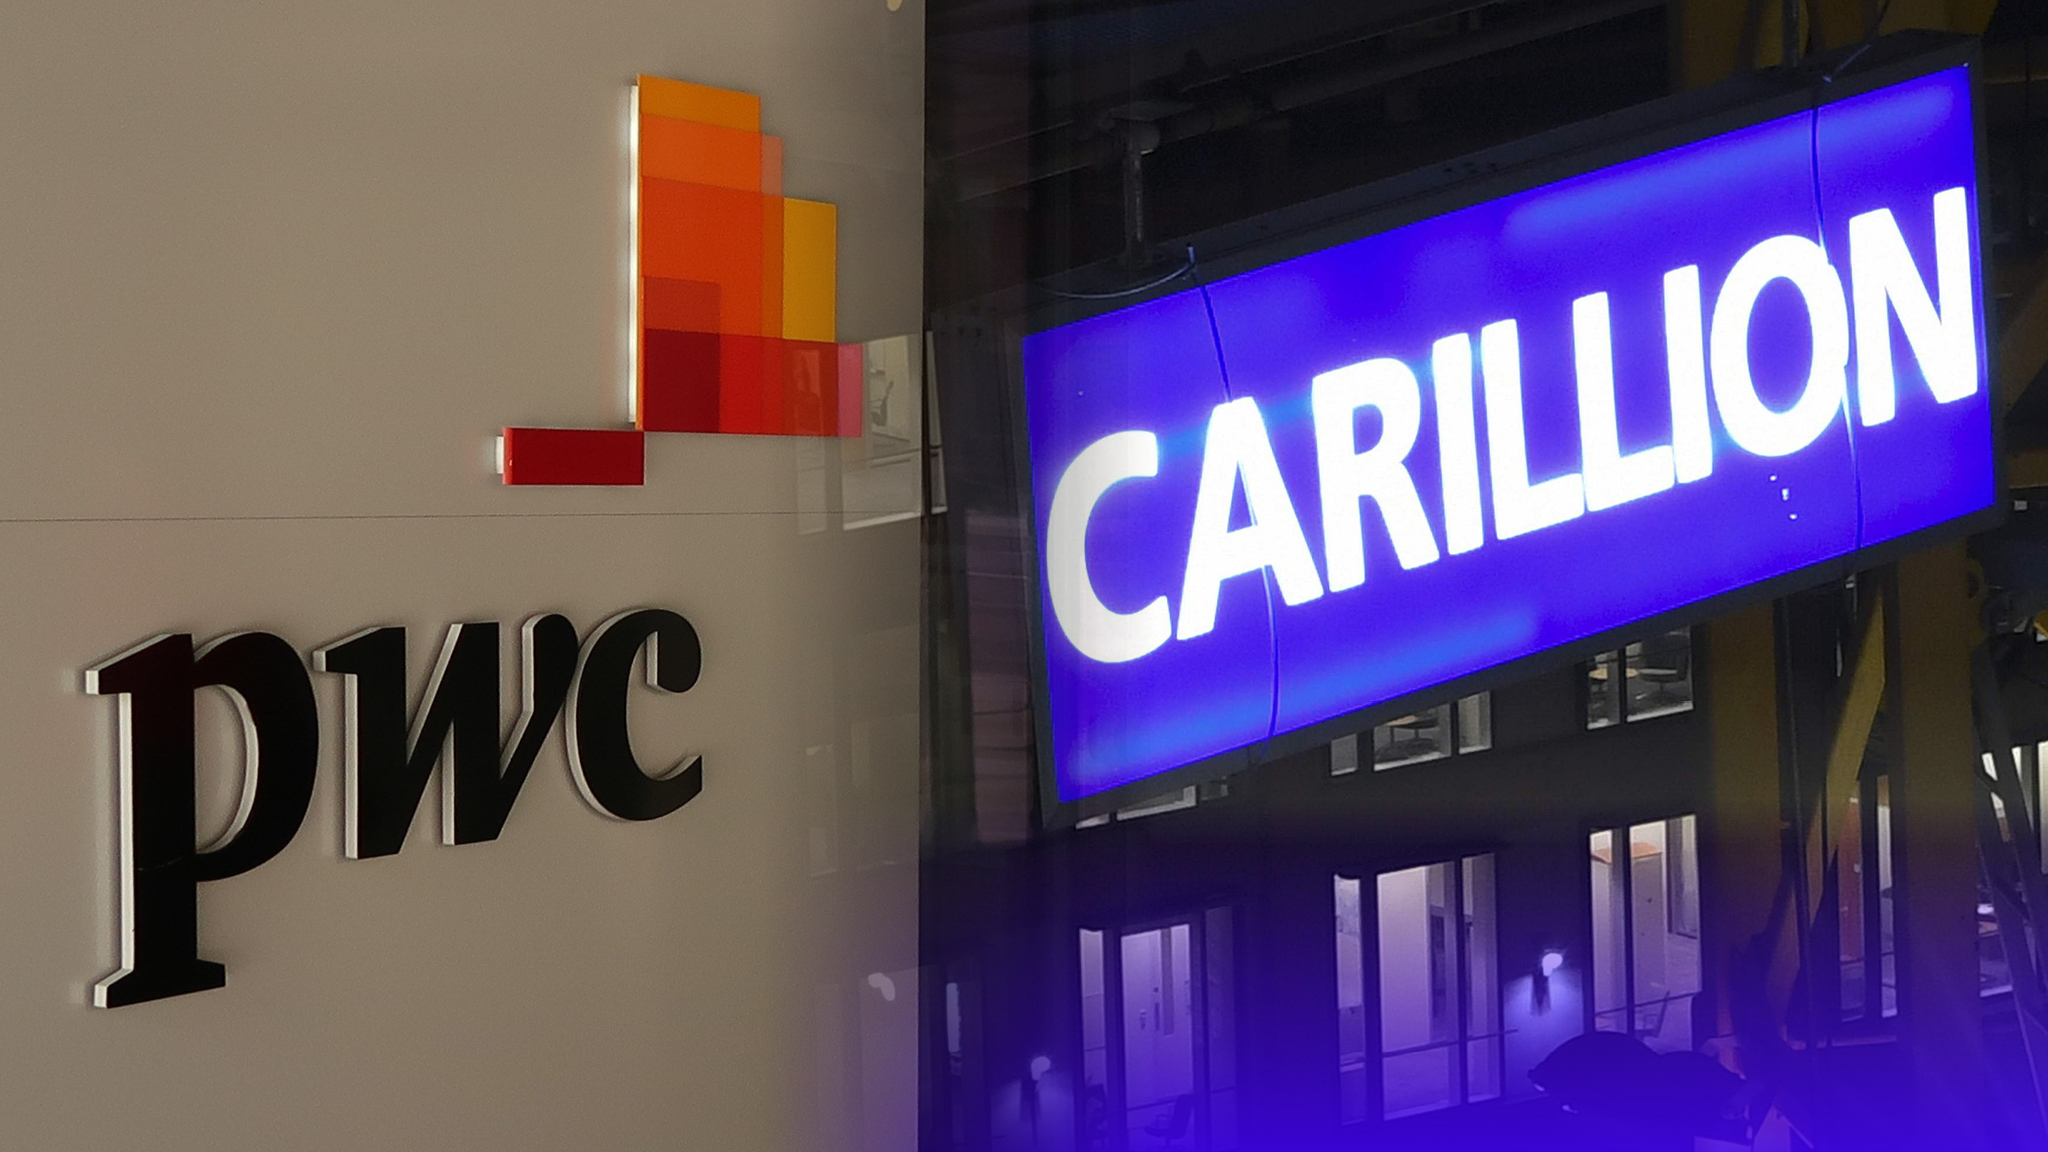 PwC's multiple roles with Carillion come under scrutiny